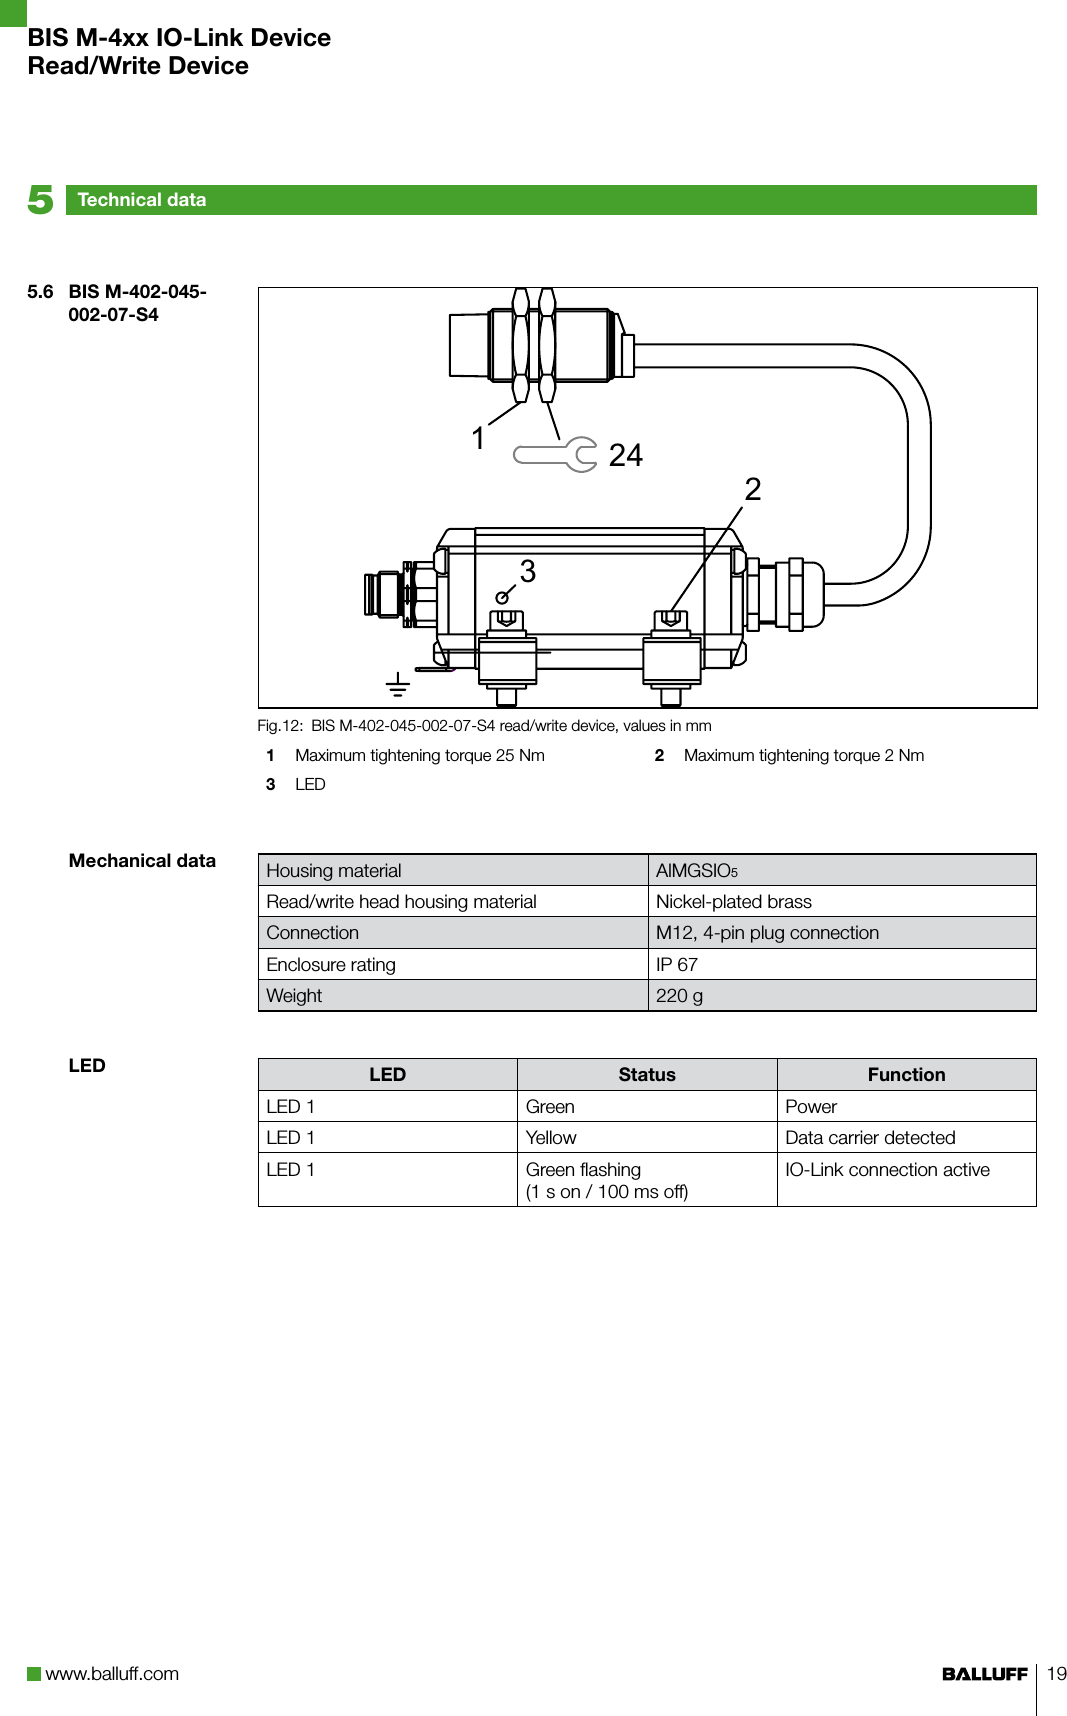 Balluff BISM4XX07 RFID Read-only, non-contact User Manual 1 of 2 on